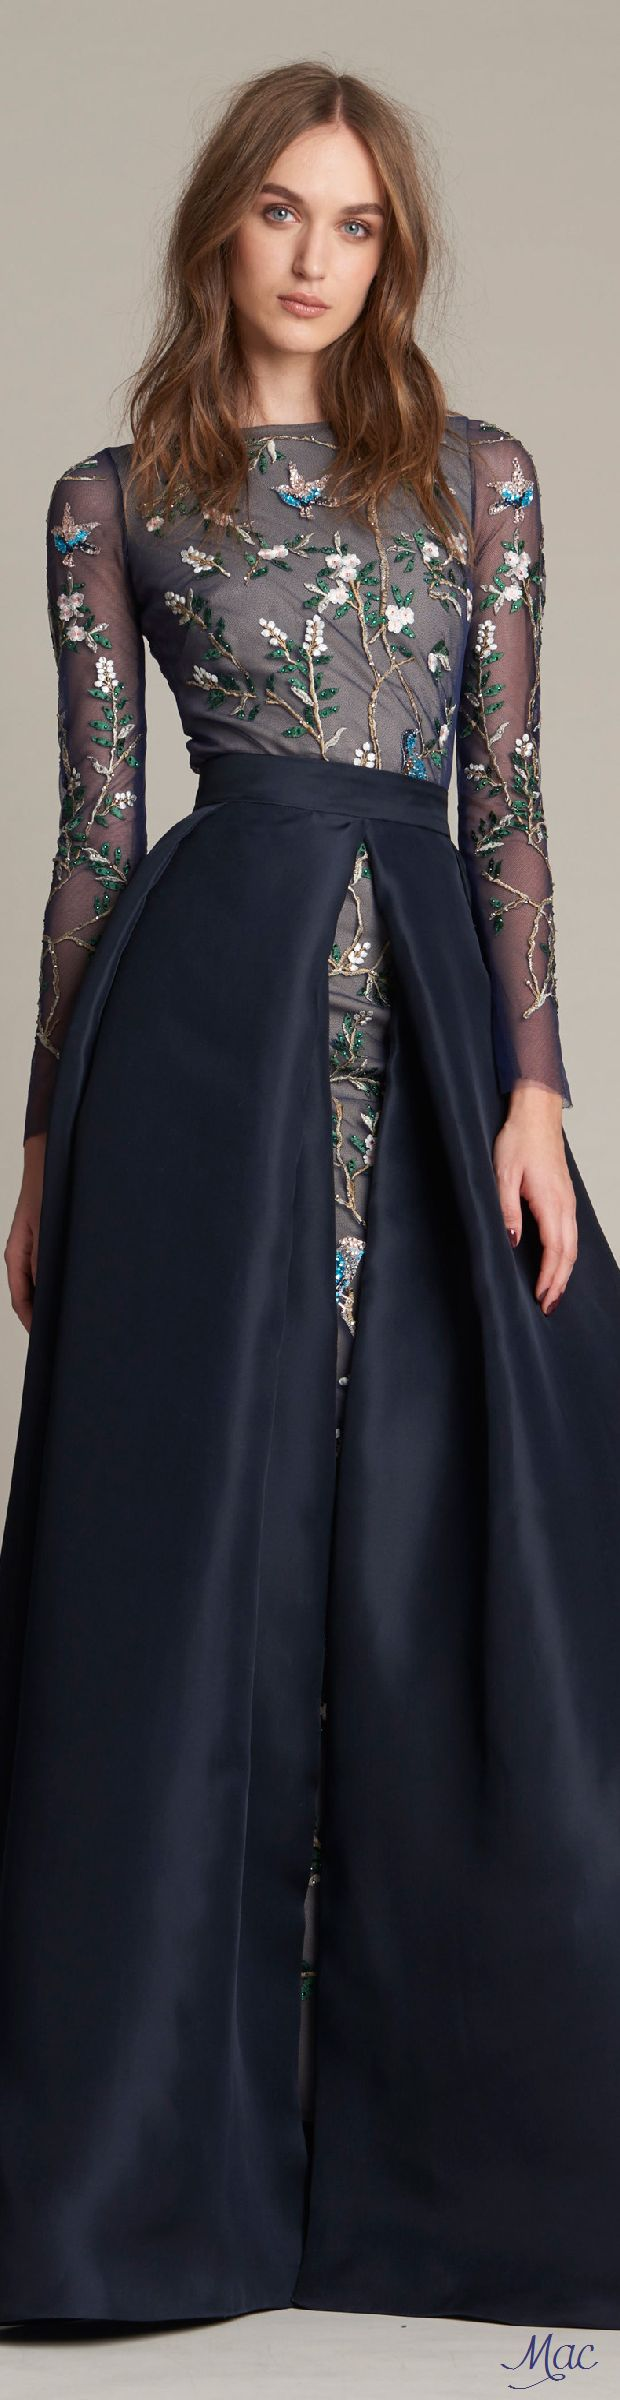 Pre-Fall 2016 Monique Lhuillier women fashion outfit clothing style apparel @roressclothes closet ideas